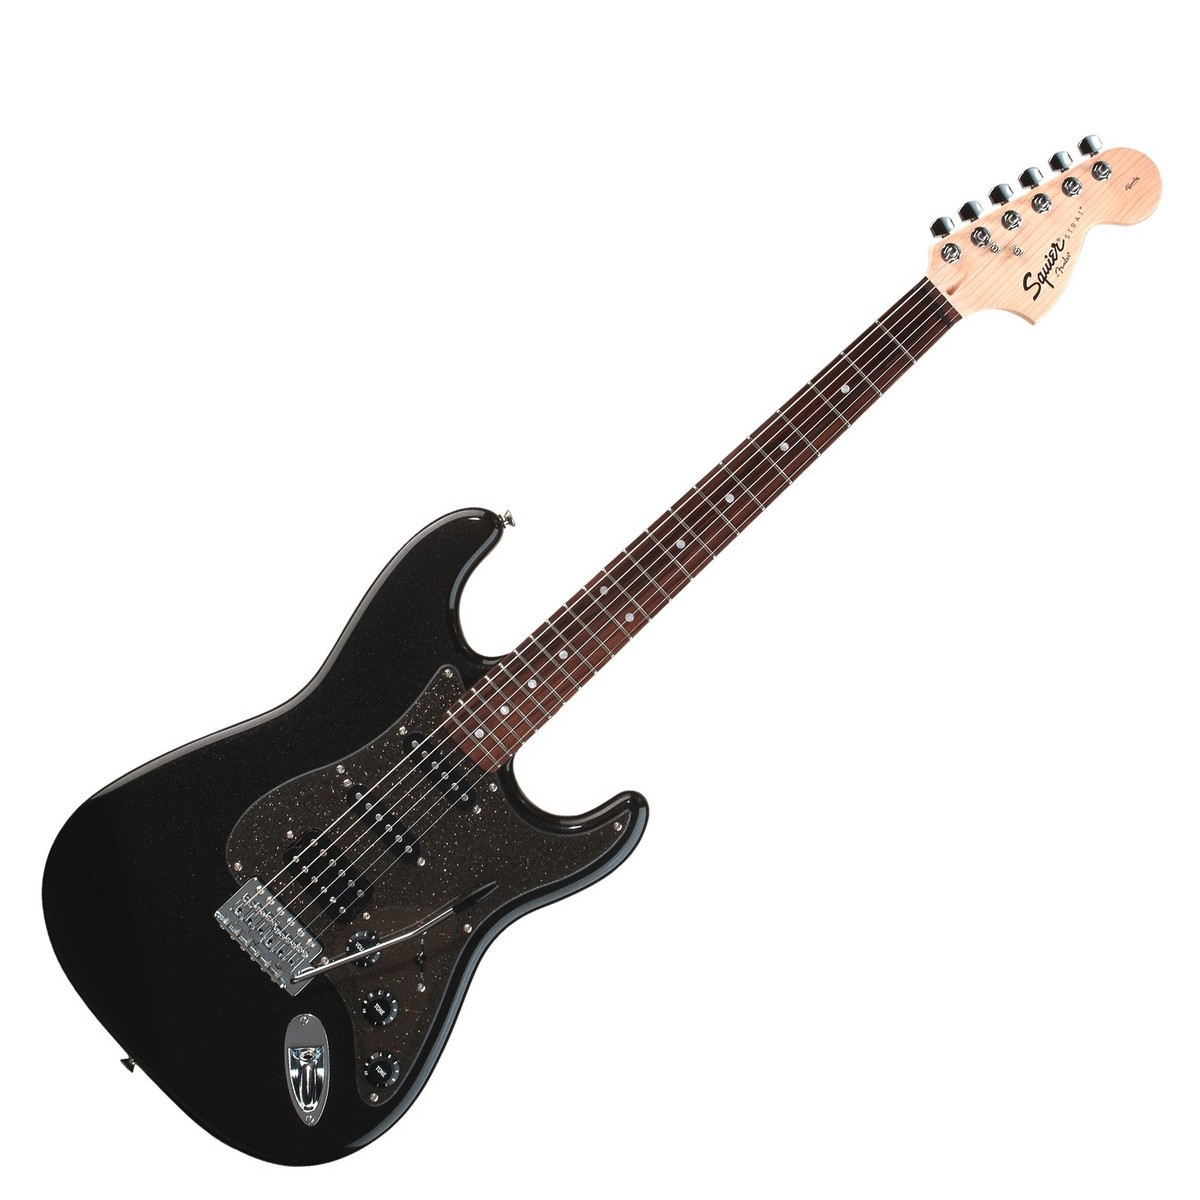 Squier Affinity Strat Wiring Diagram: Squier Affinity Series Fat Strat Electric Guitar Black